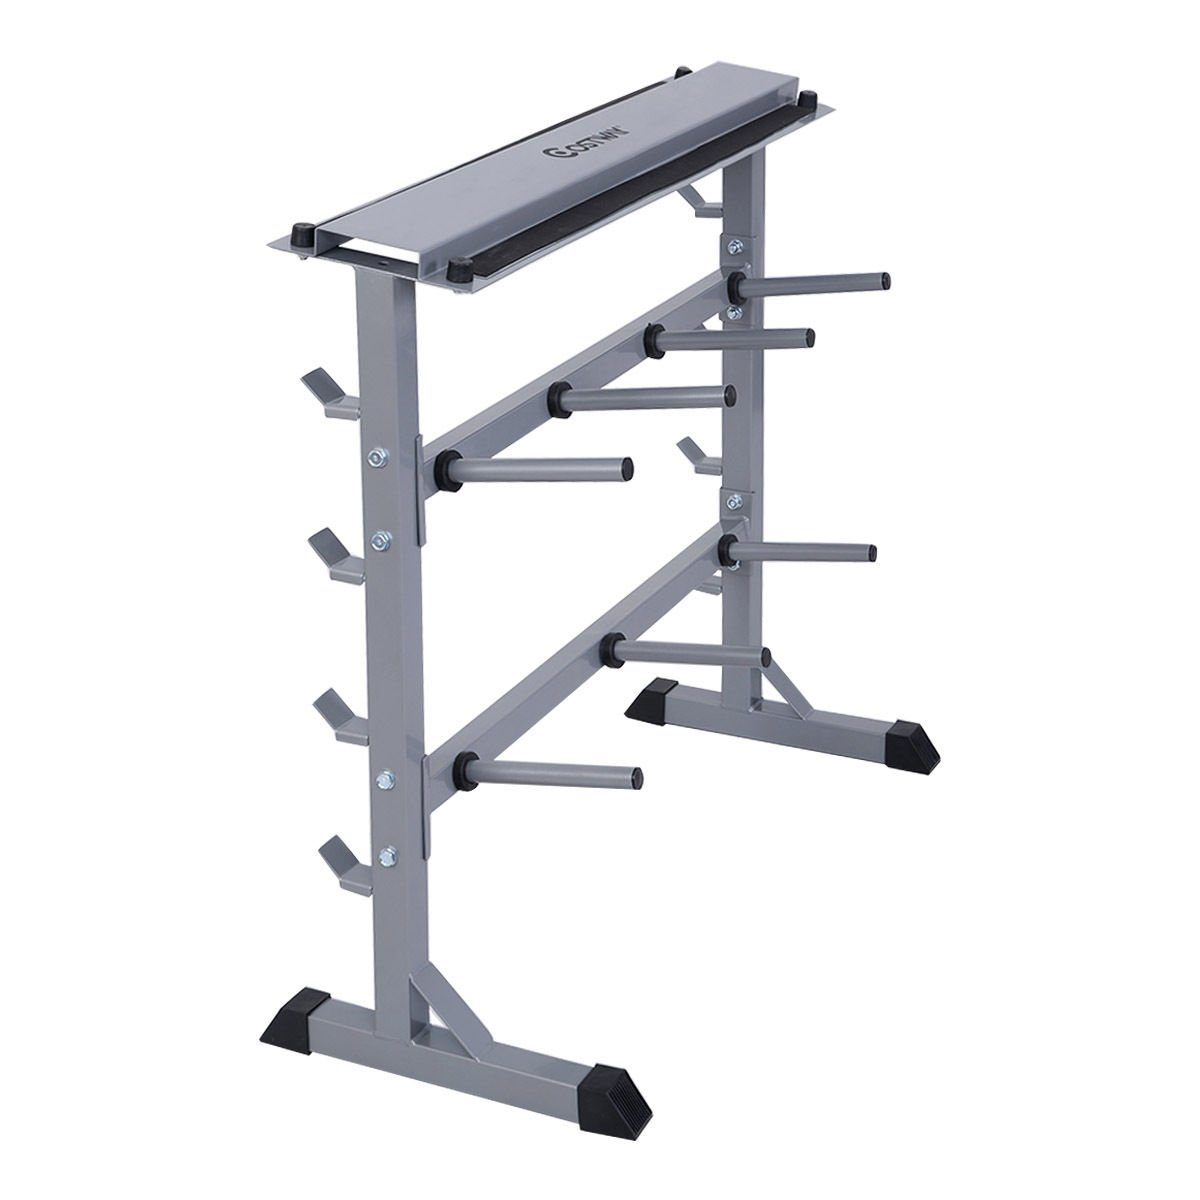 Giantex 2 Tier 40'' Barbell Dumbbell Rack Weights Storage Stand Home Gym Bench Base by Giantex